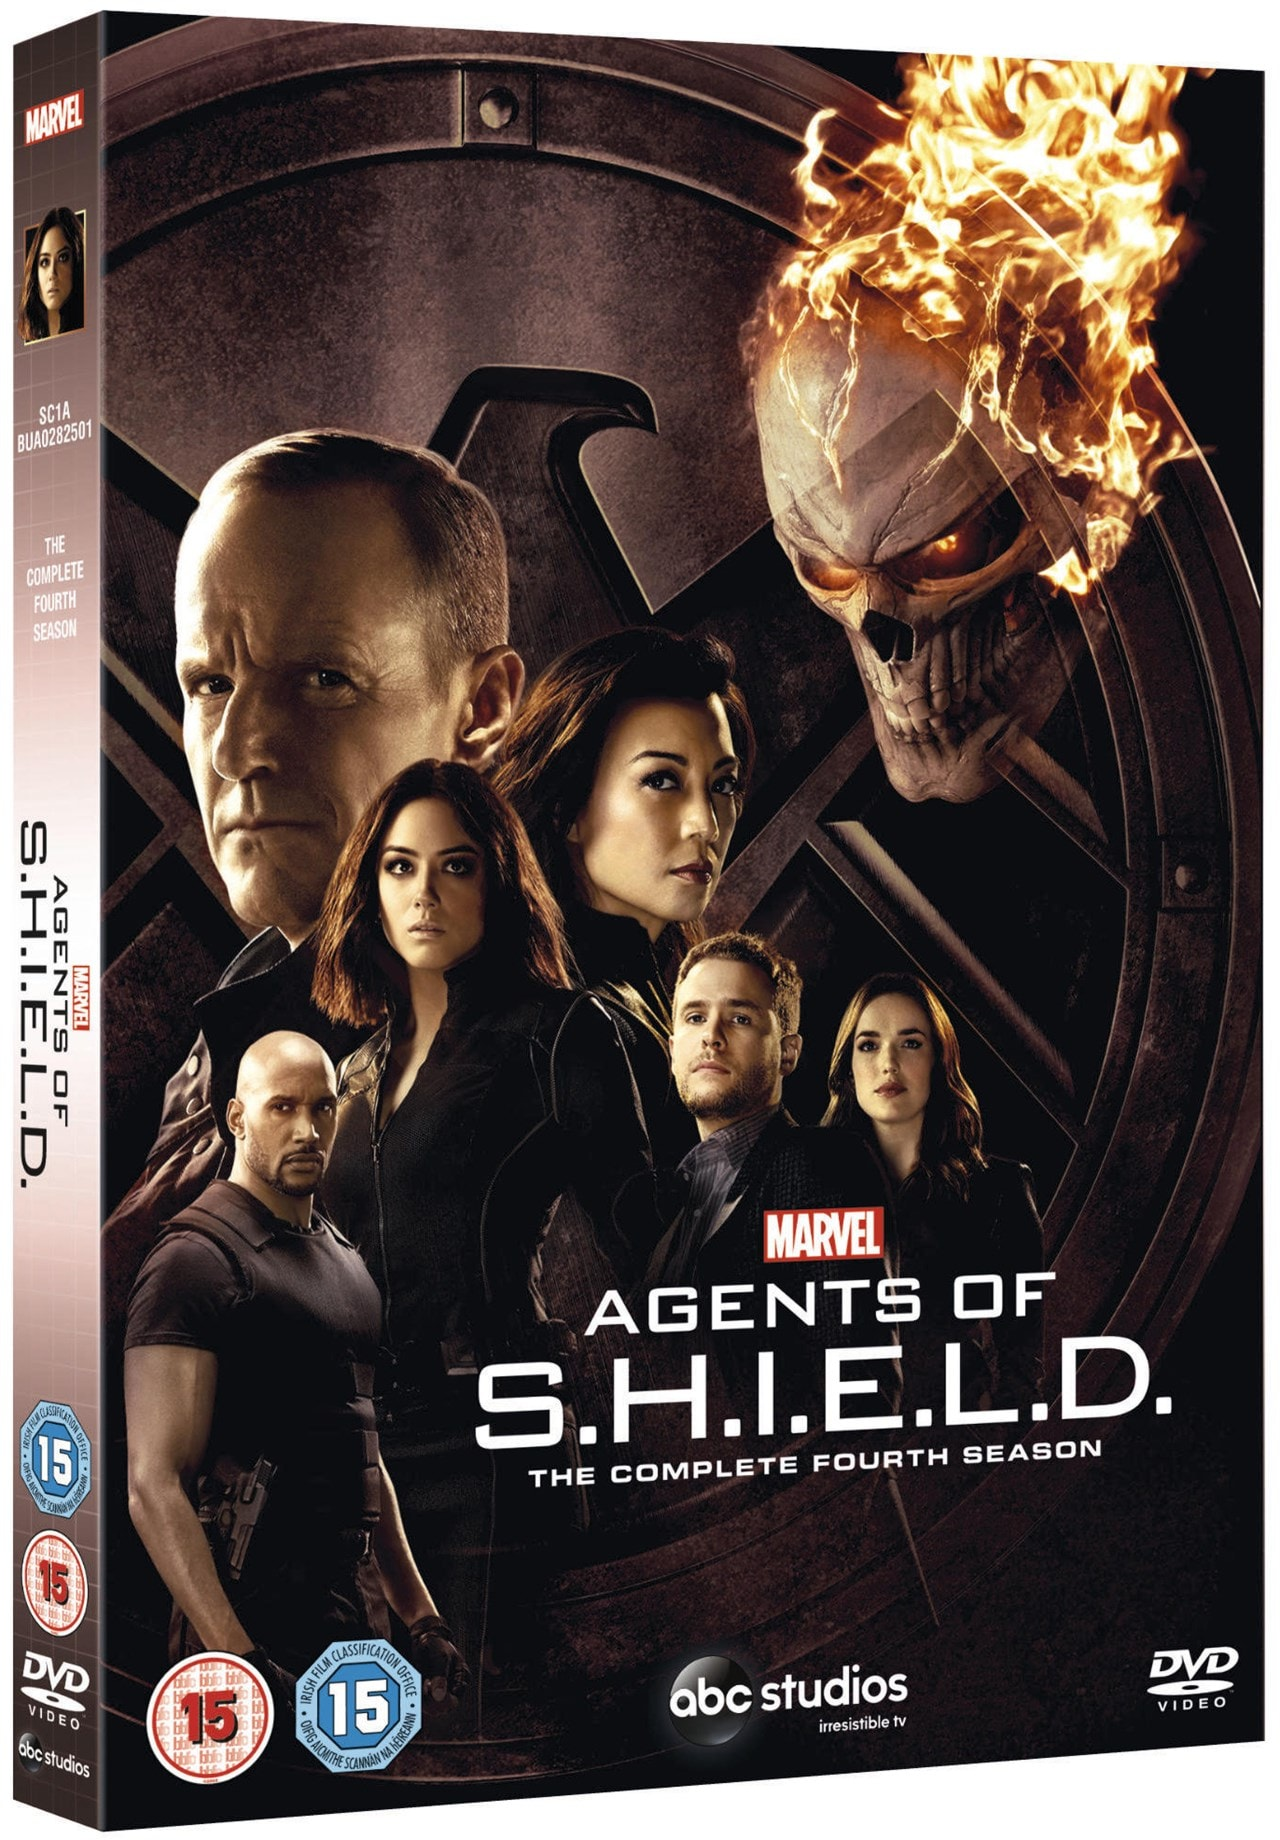 Marvel's Agents of S.H.I.E.L.D.: The Complete Fourth Season - 2